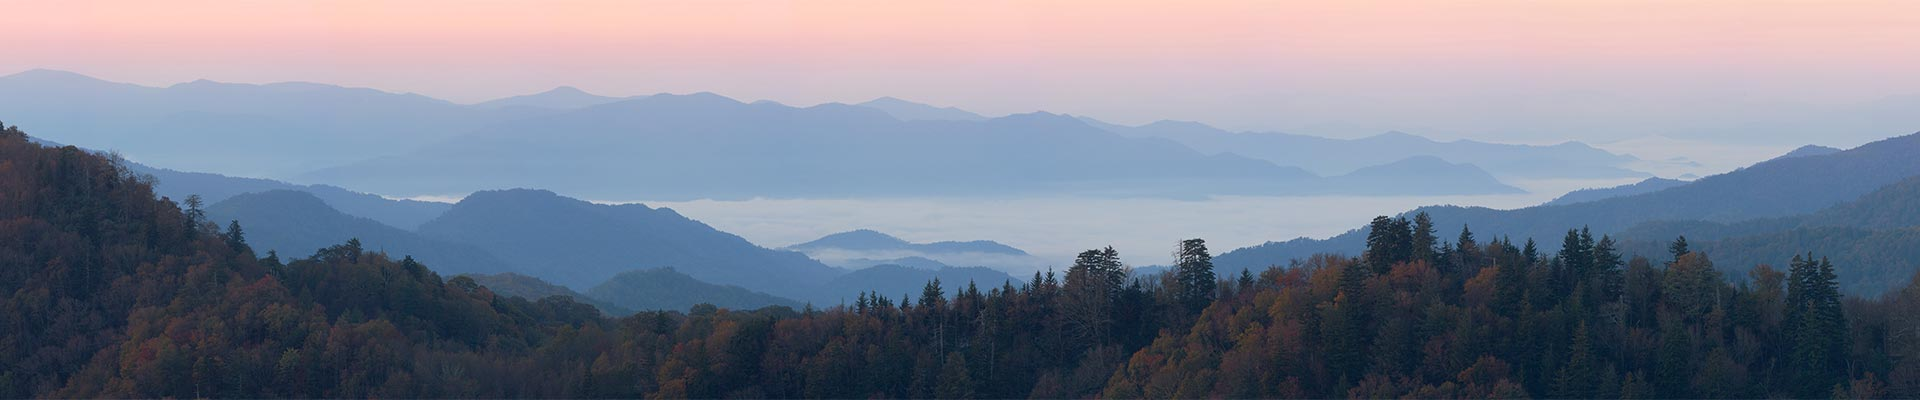 Smokey Mountains at Sunset